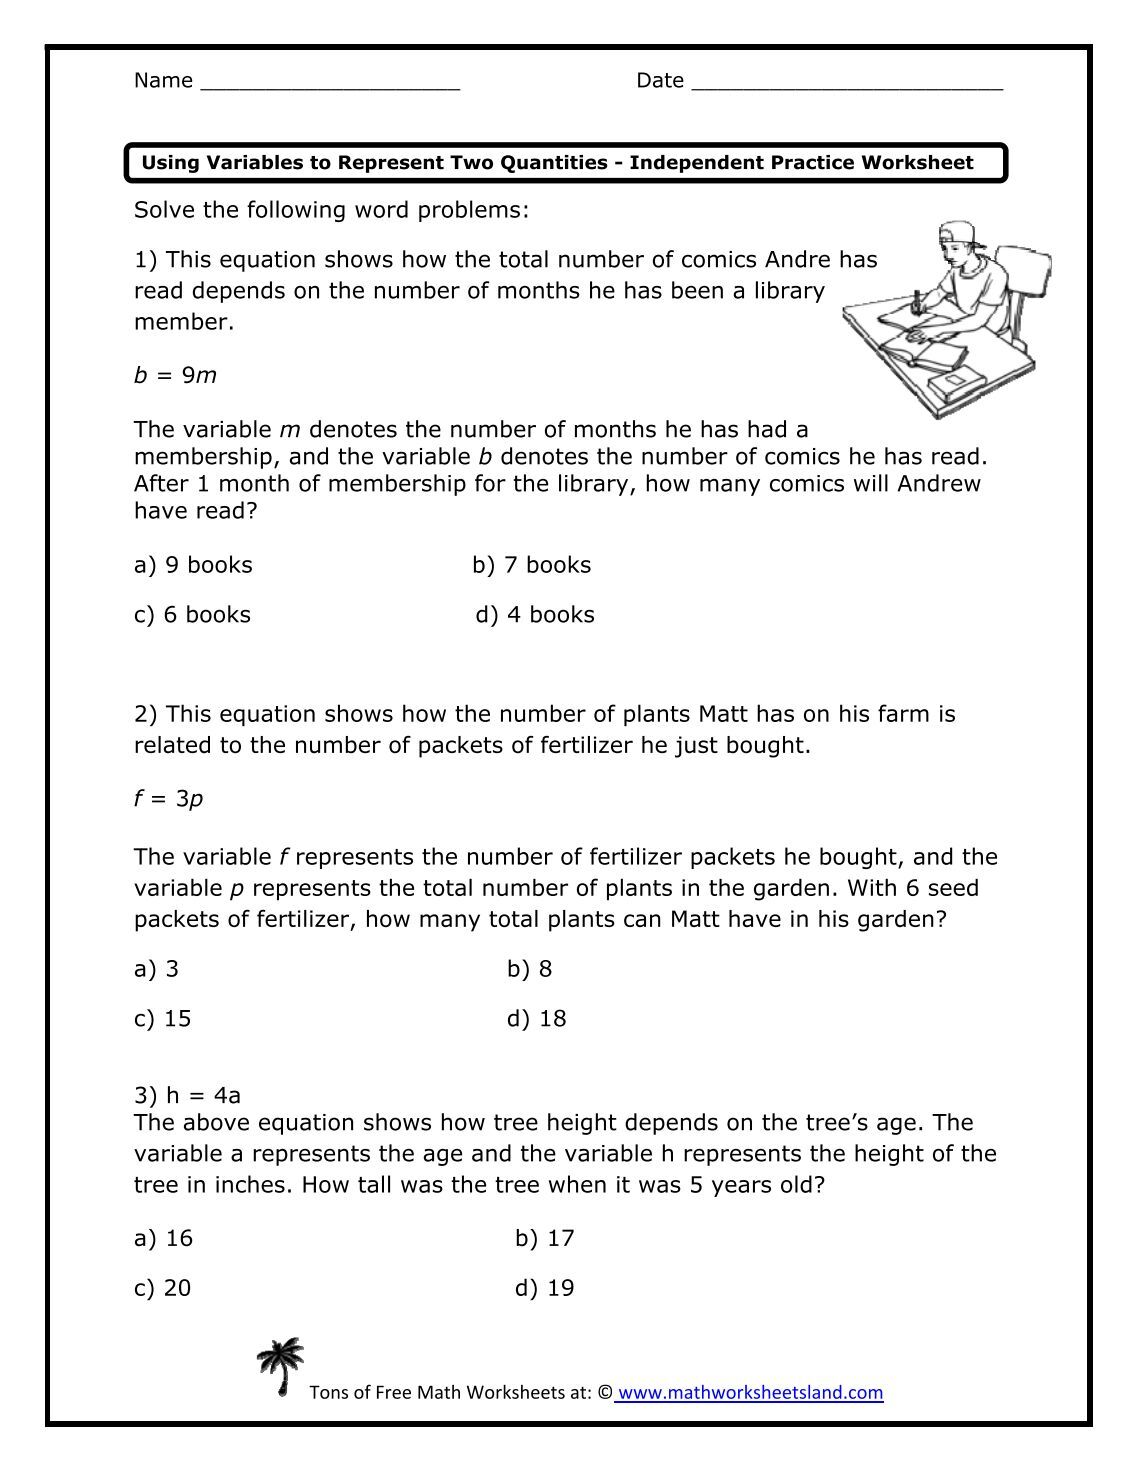 Free Worksheet Math Worksheet Land 260 free magazines from mathworksheetsland com com